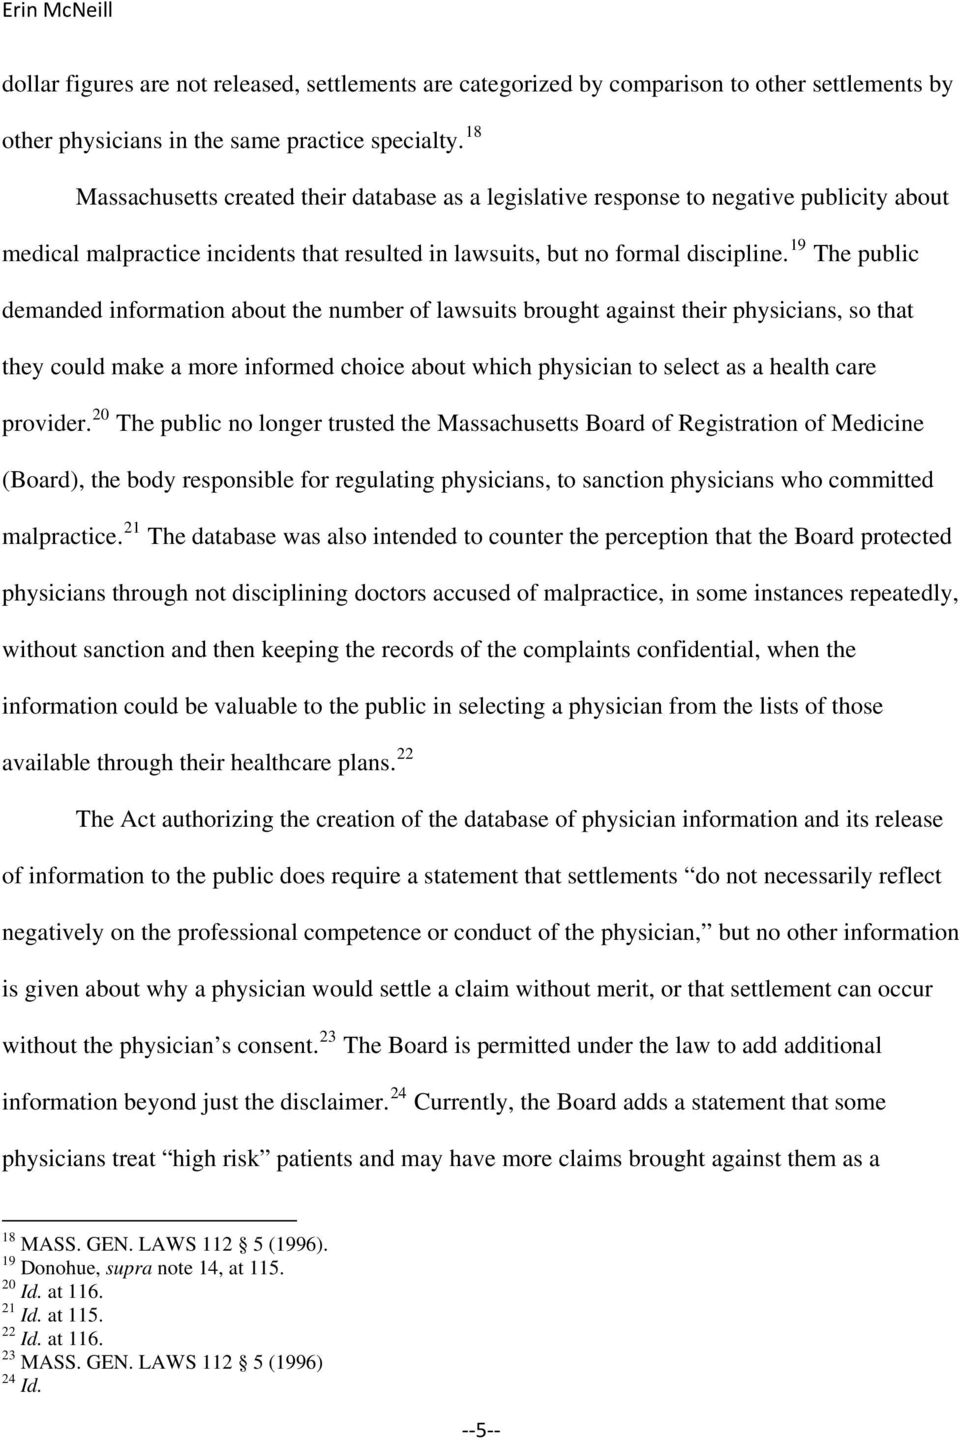 19 The public demanded information about the number of lawsuits brought against their physicians, so that they could make a more informed choice about which physician to select as a health care